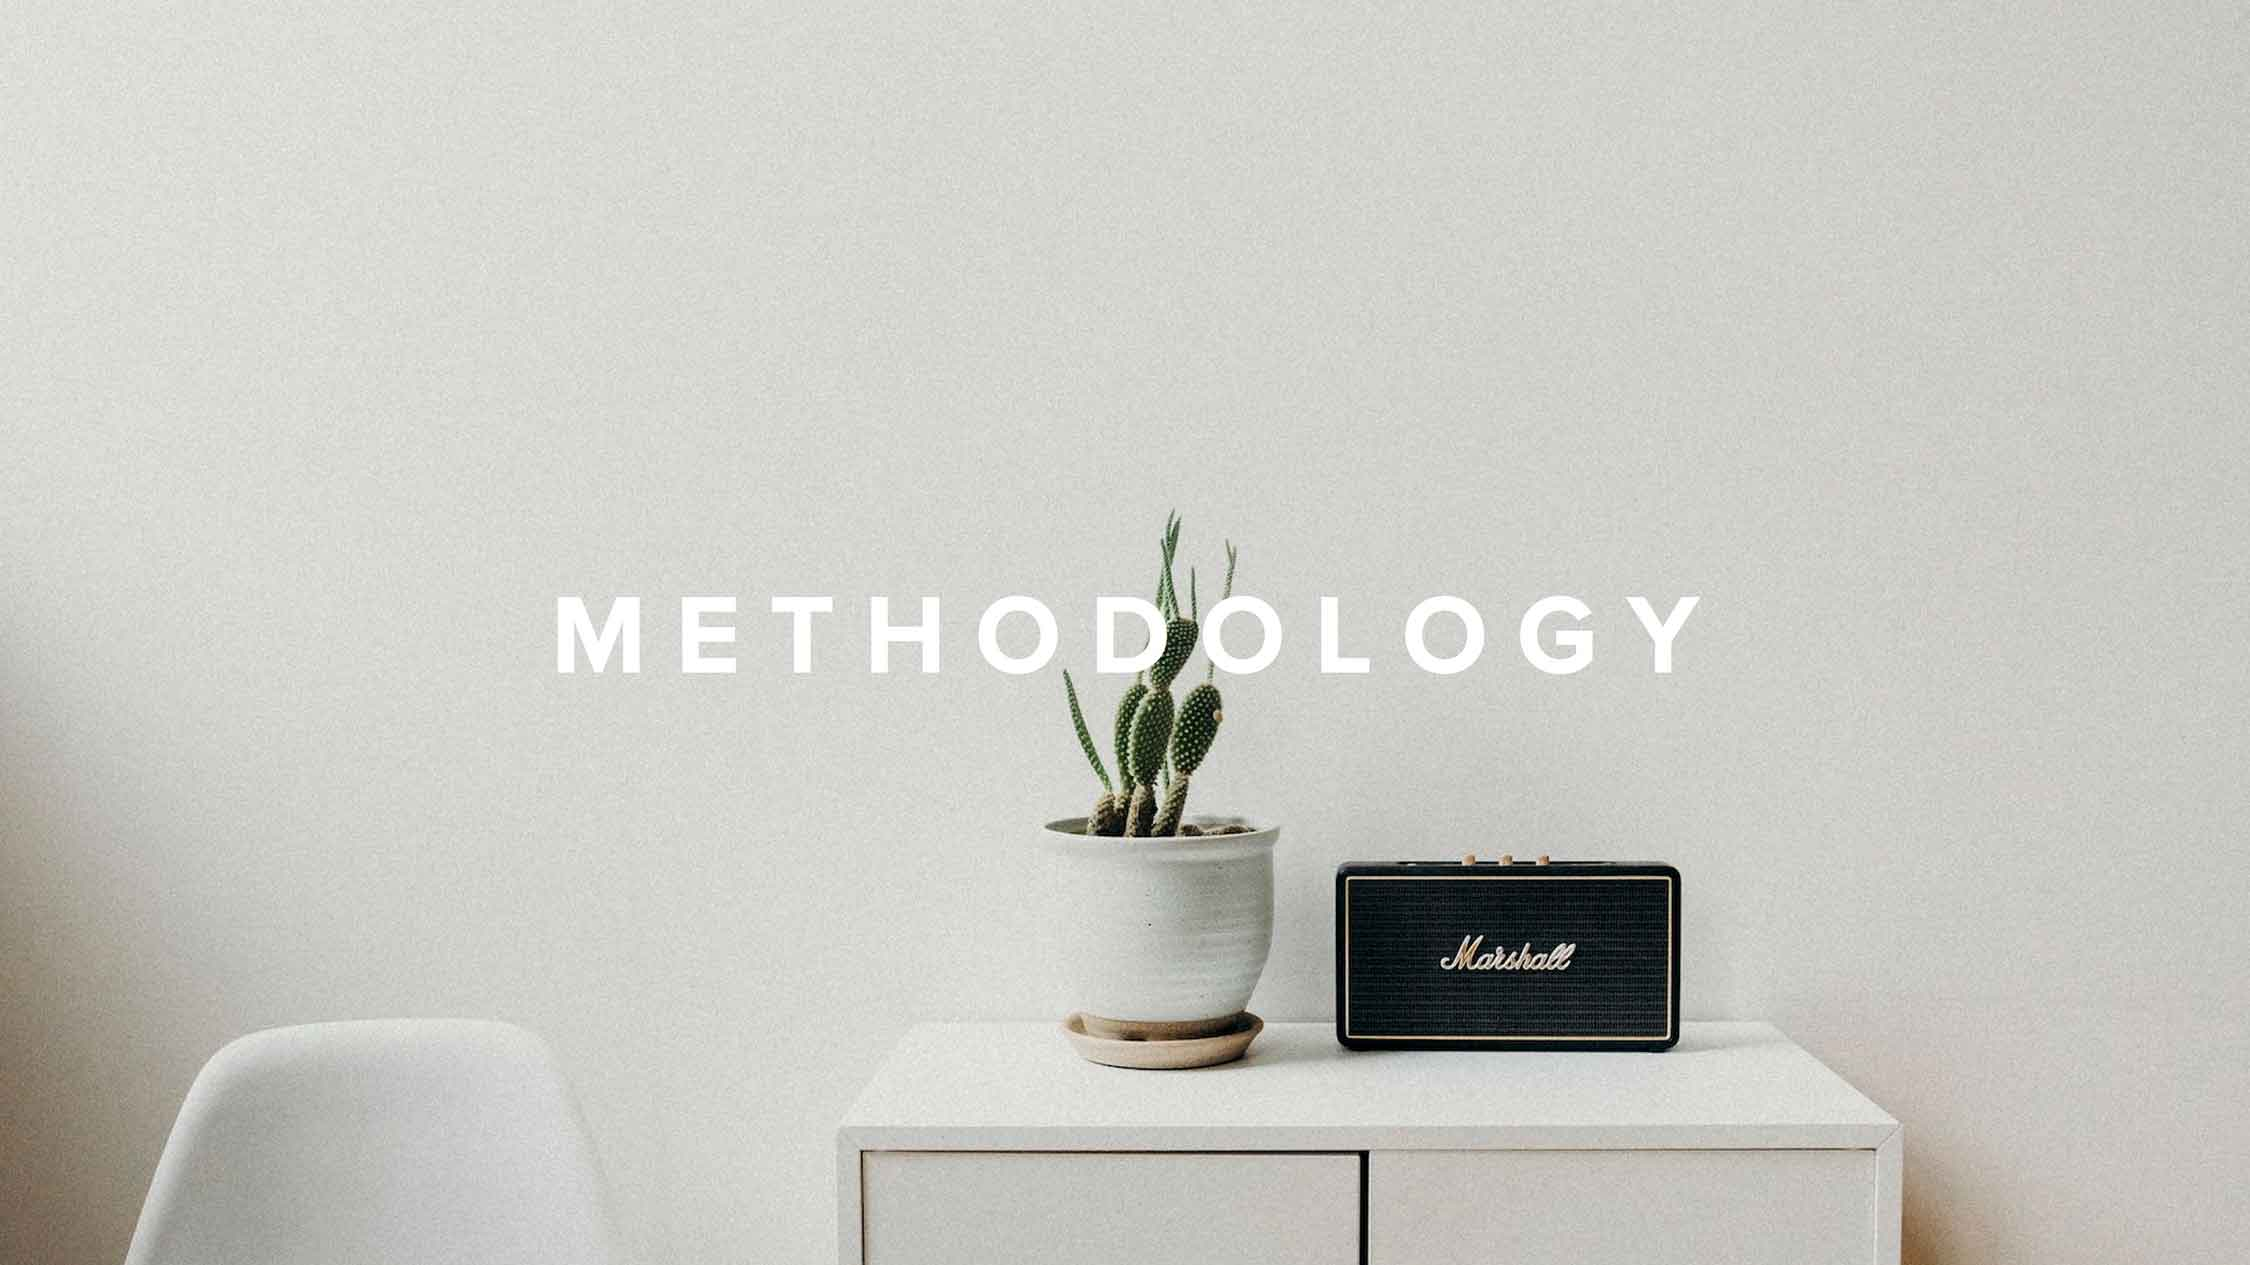 """Methodology"" atop a Marshall smart speaker."